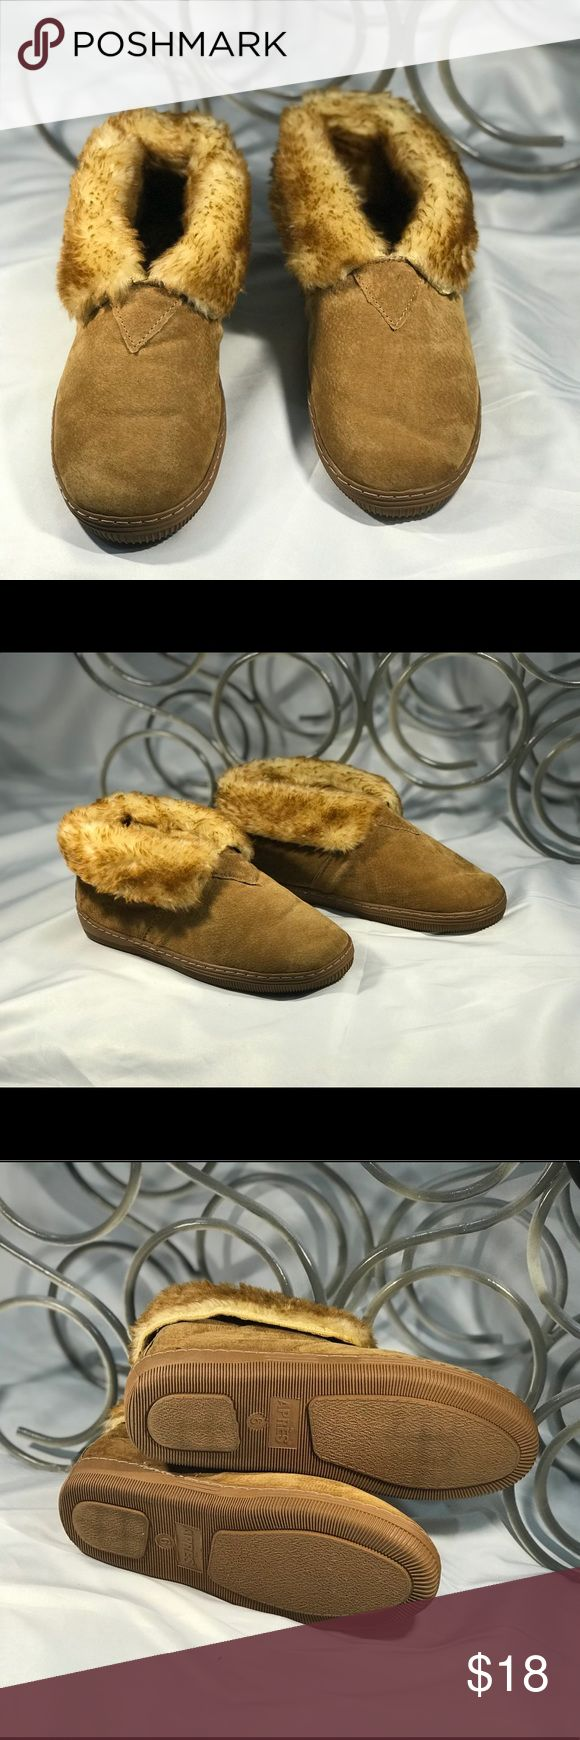 😘 CUTE BROWN APRES MOCCASINS/ANKLE BOOTS ▪️Sz 6▪️ Details.....☺️🤔 Brand:  APRES  SKI BOOTS  Size: 6 Material: LEATHER    Color: BROWN  Features: FUR LINED (SEE PICTURES)  ▪️▪️▪️▪️▪️▪️▪️▪️▪️▪️   Fine Print: -Questions? If you have any questions please feel free to send me a message. Storage Conditions: Pet-free & Smoke-free. -Shipping&Handling: All items will be shipped within 1 Business Day (same day for most orders).   Thank You For Shopping 523EXCHANGE! apres Shoes Moccasins